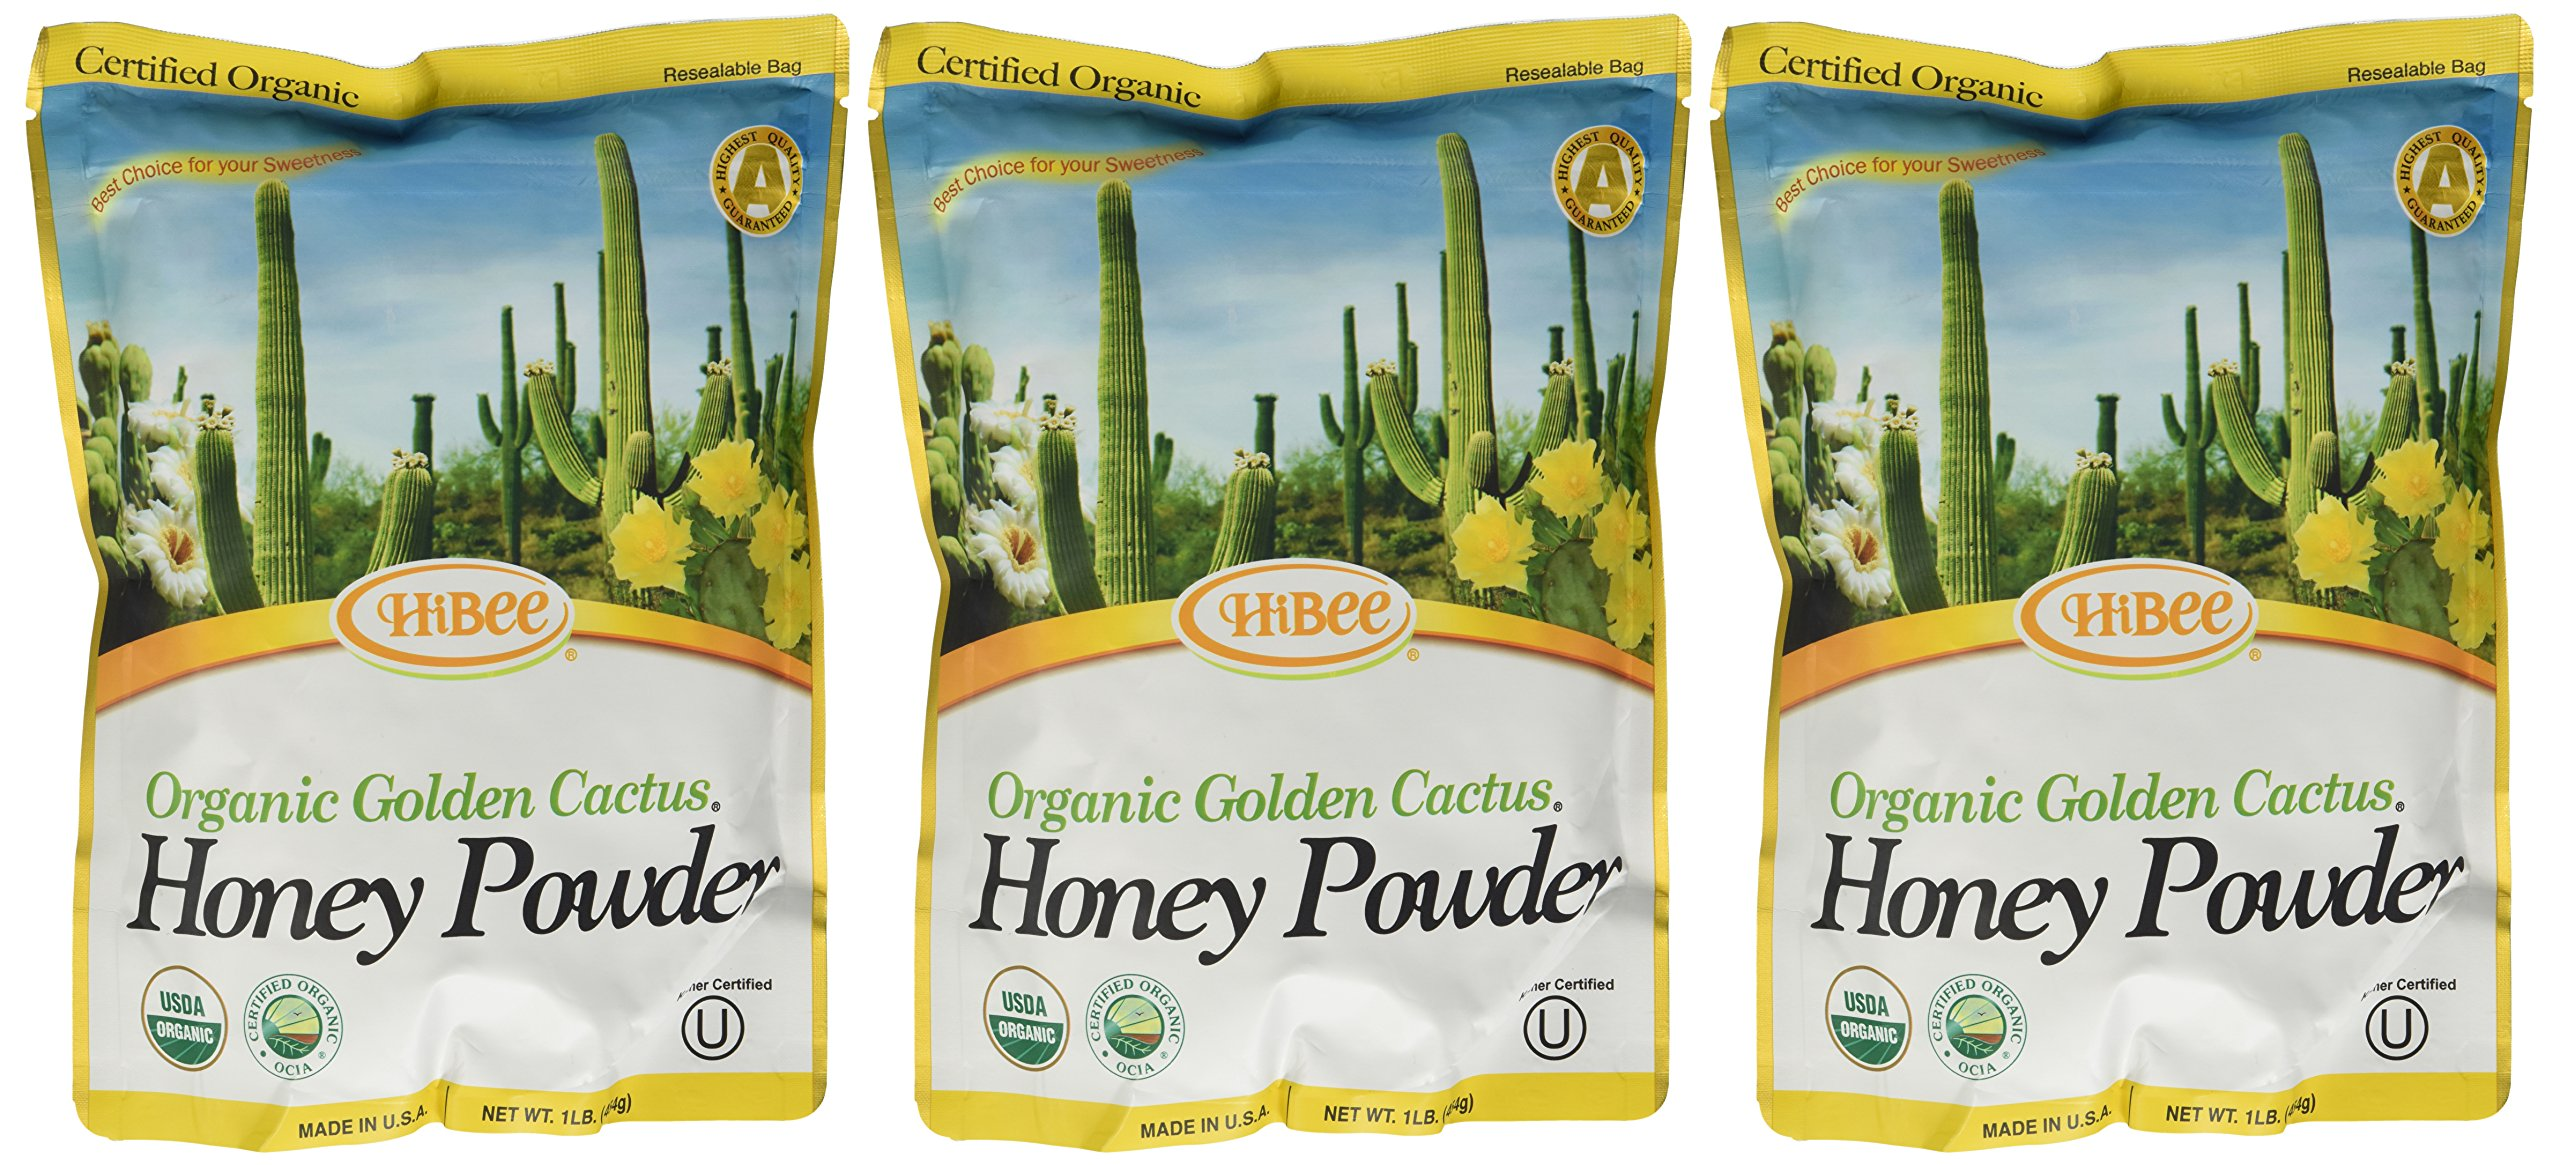 Hibee Golden Cactus Honey Powder Organic, 16 Ounce Units (Pack of 3)